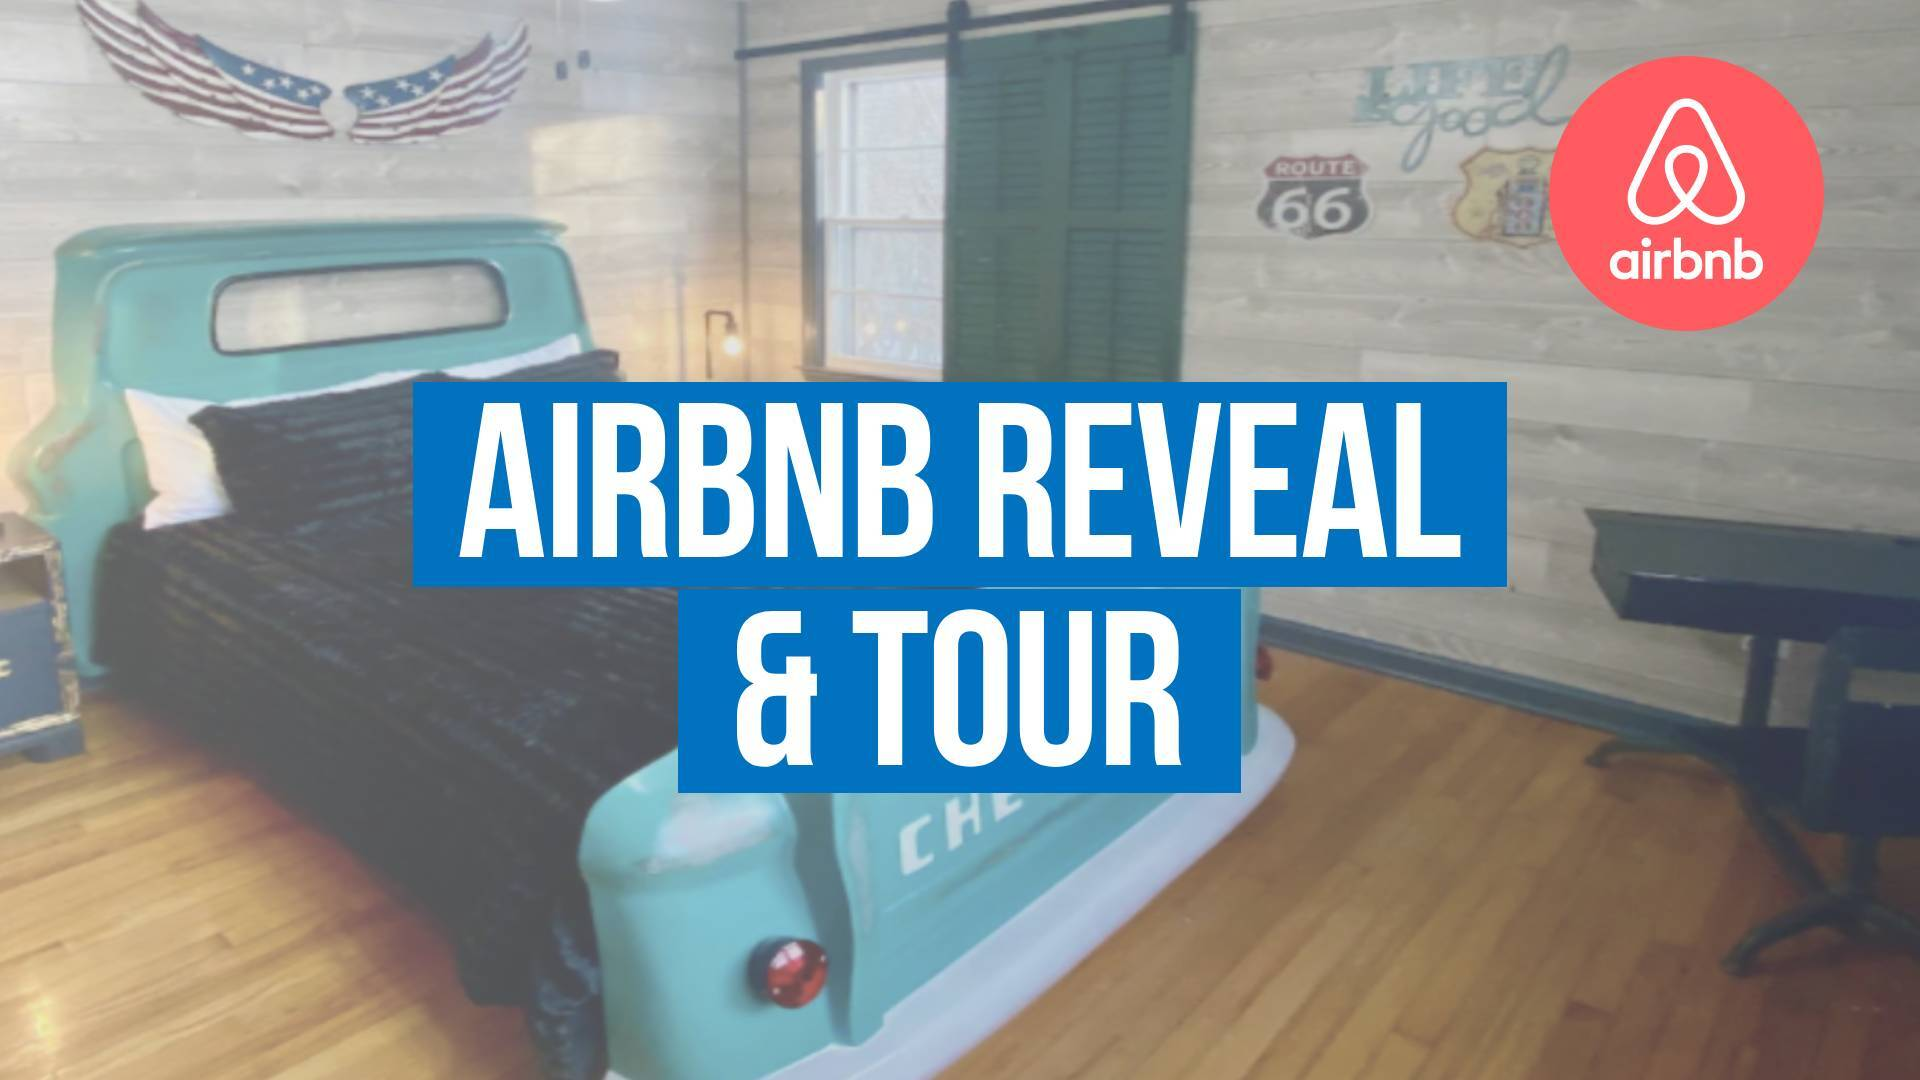 airbnb pricing strategy and reveal text overlaid on a image of a truck bed